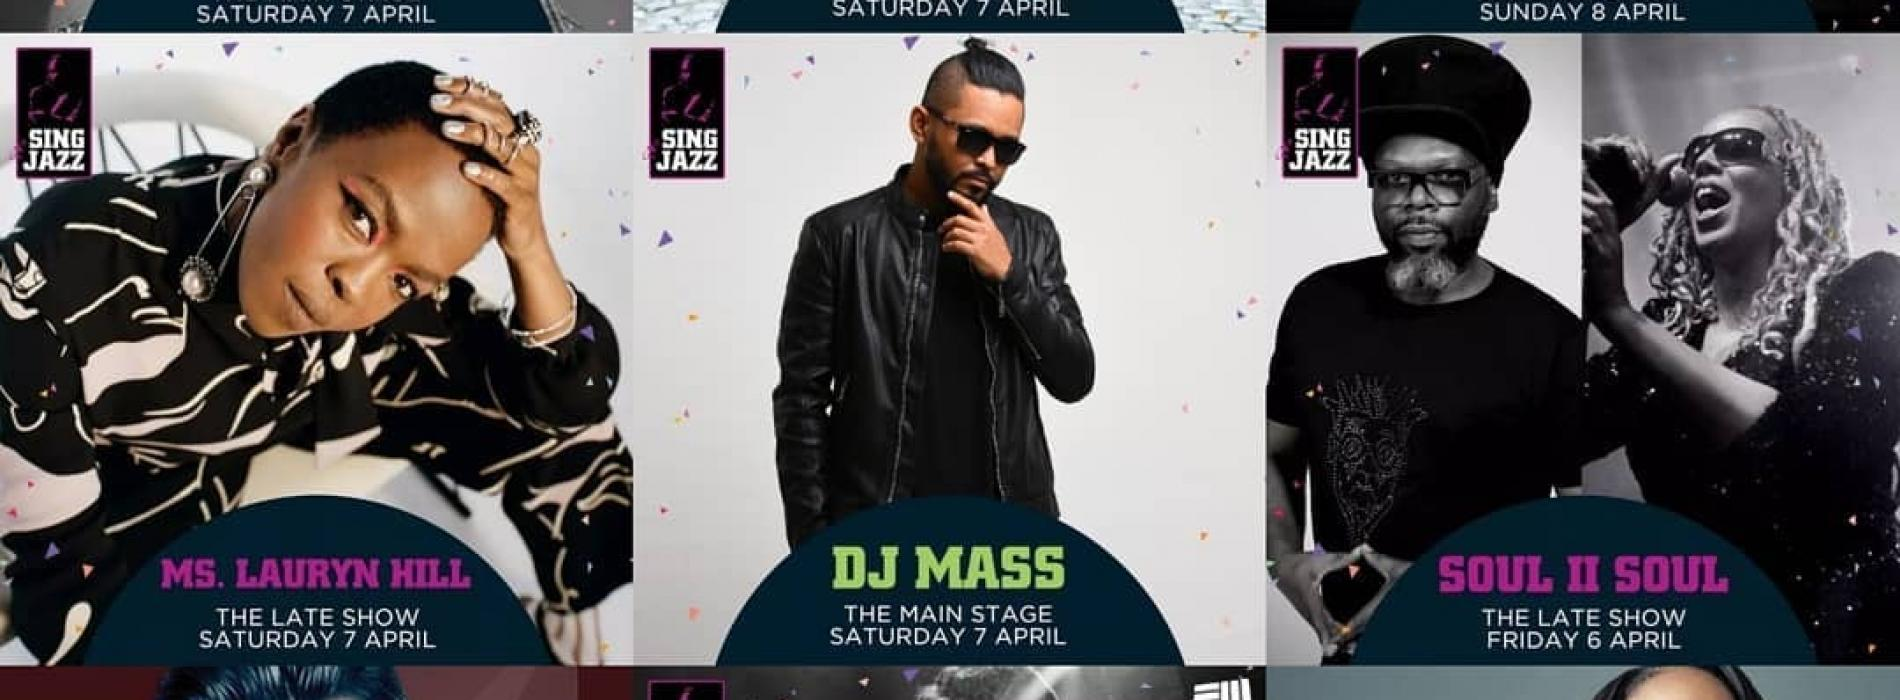 Dj Mass Will Be Performing @ At The Singapore Jazz Festival Today!